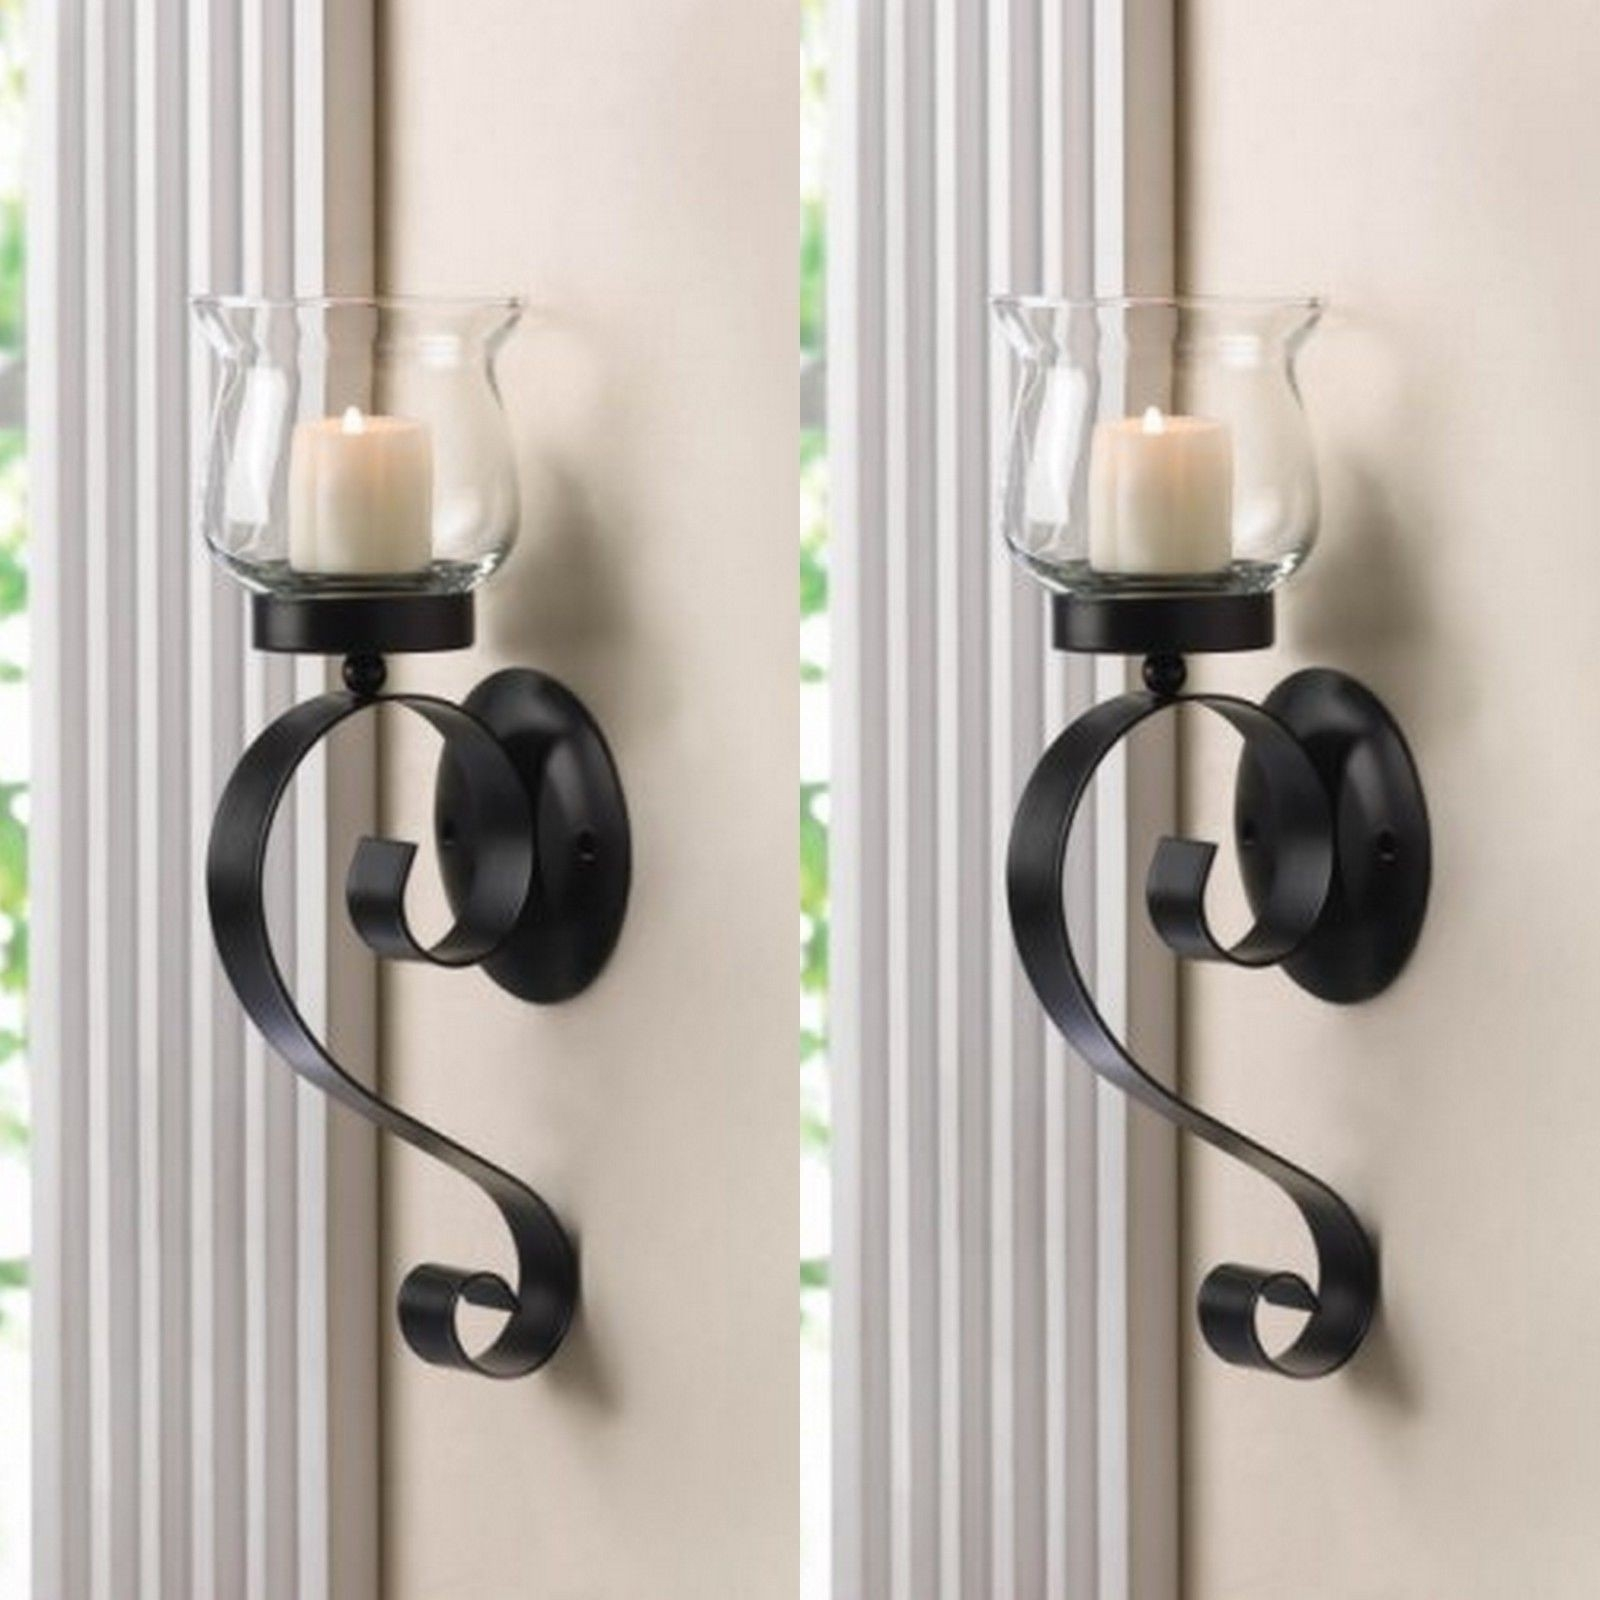 Wall Sconces Candles Wrought Iron Ideas On Foter